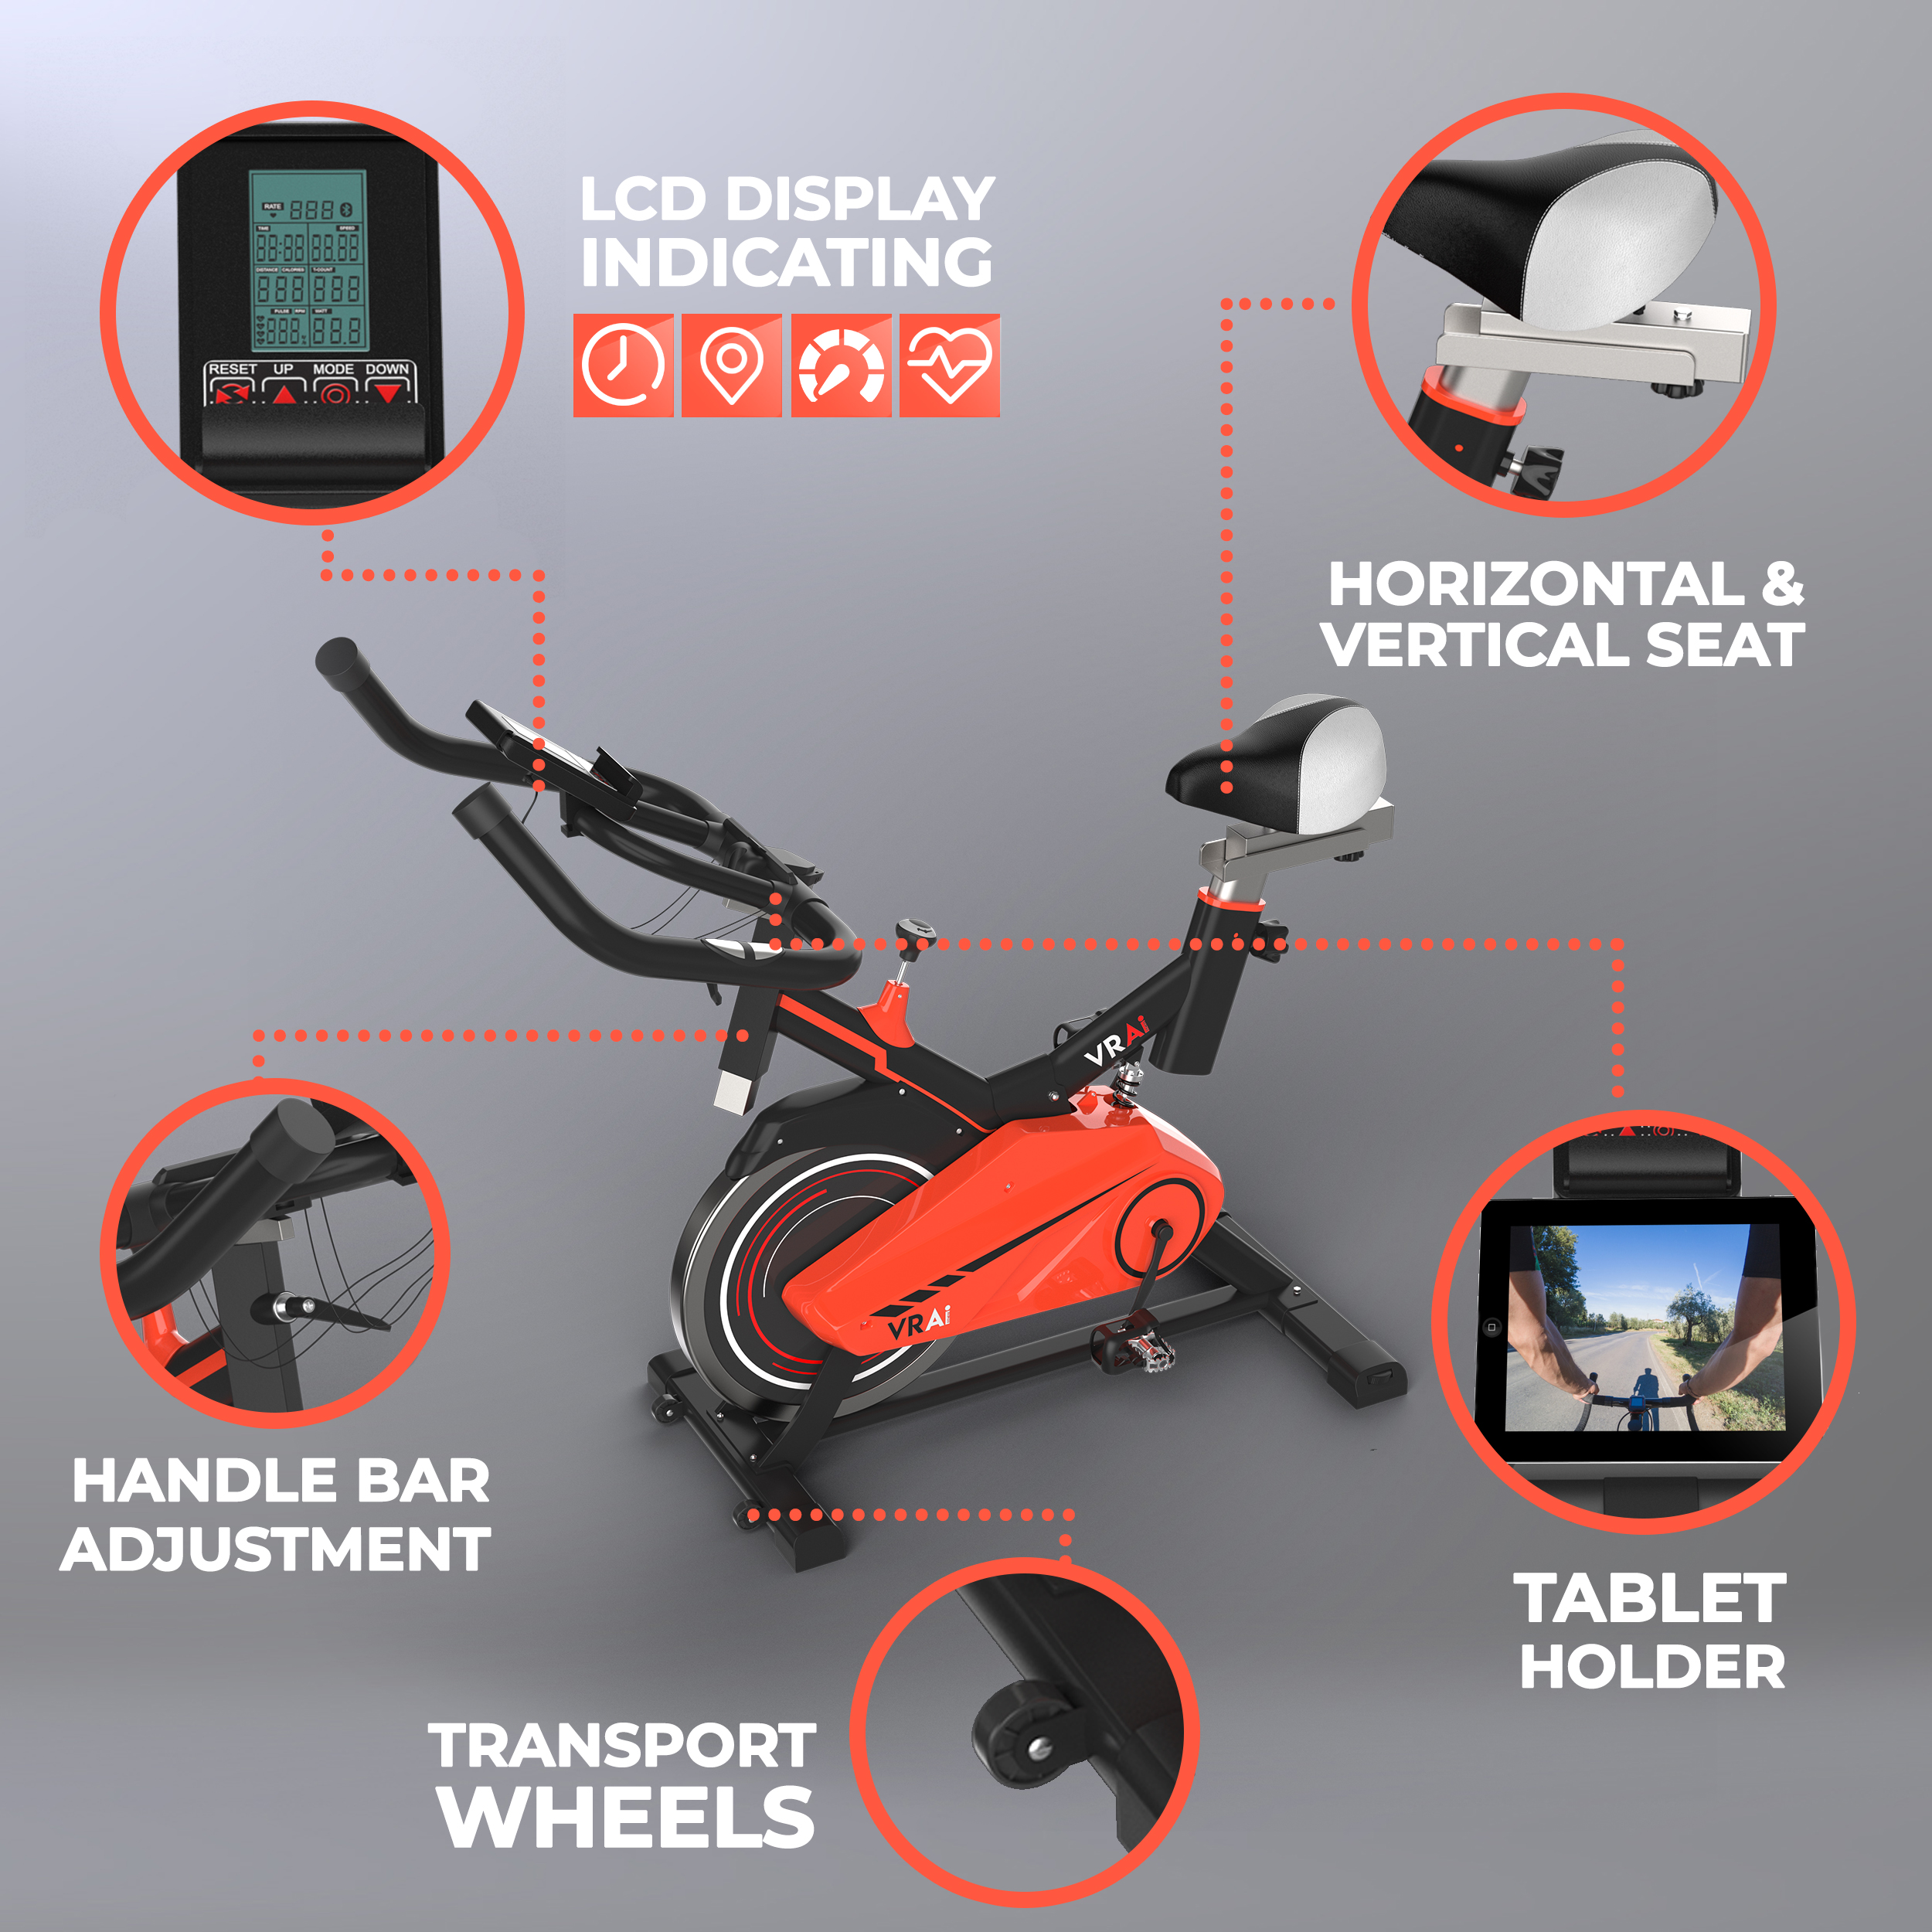 VRAi Fitness Introduces Ergonomic, Bluetooth App Compatible Spin Bike for Home Workouts at an Affordable Price, Pay Later Scheme